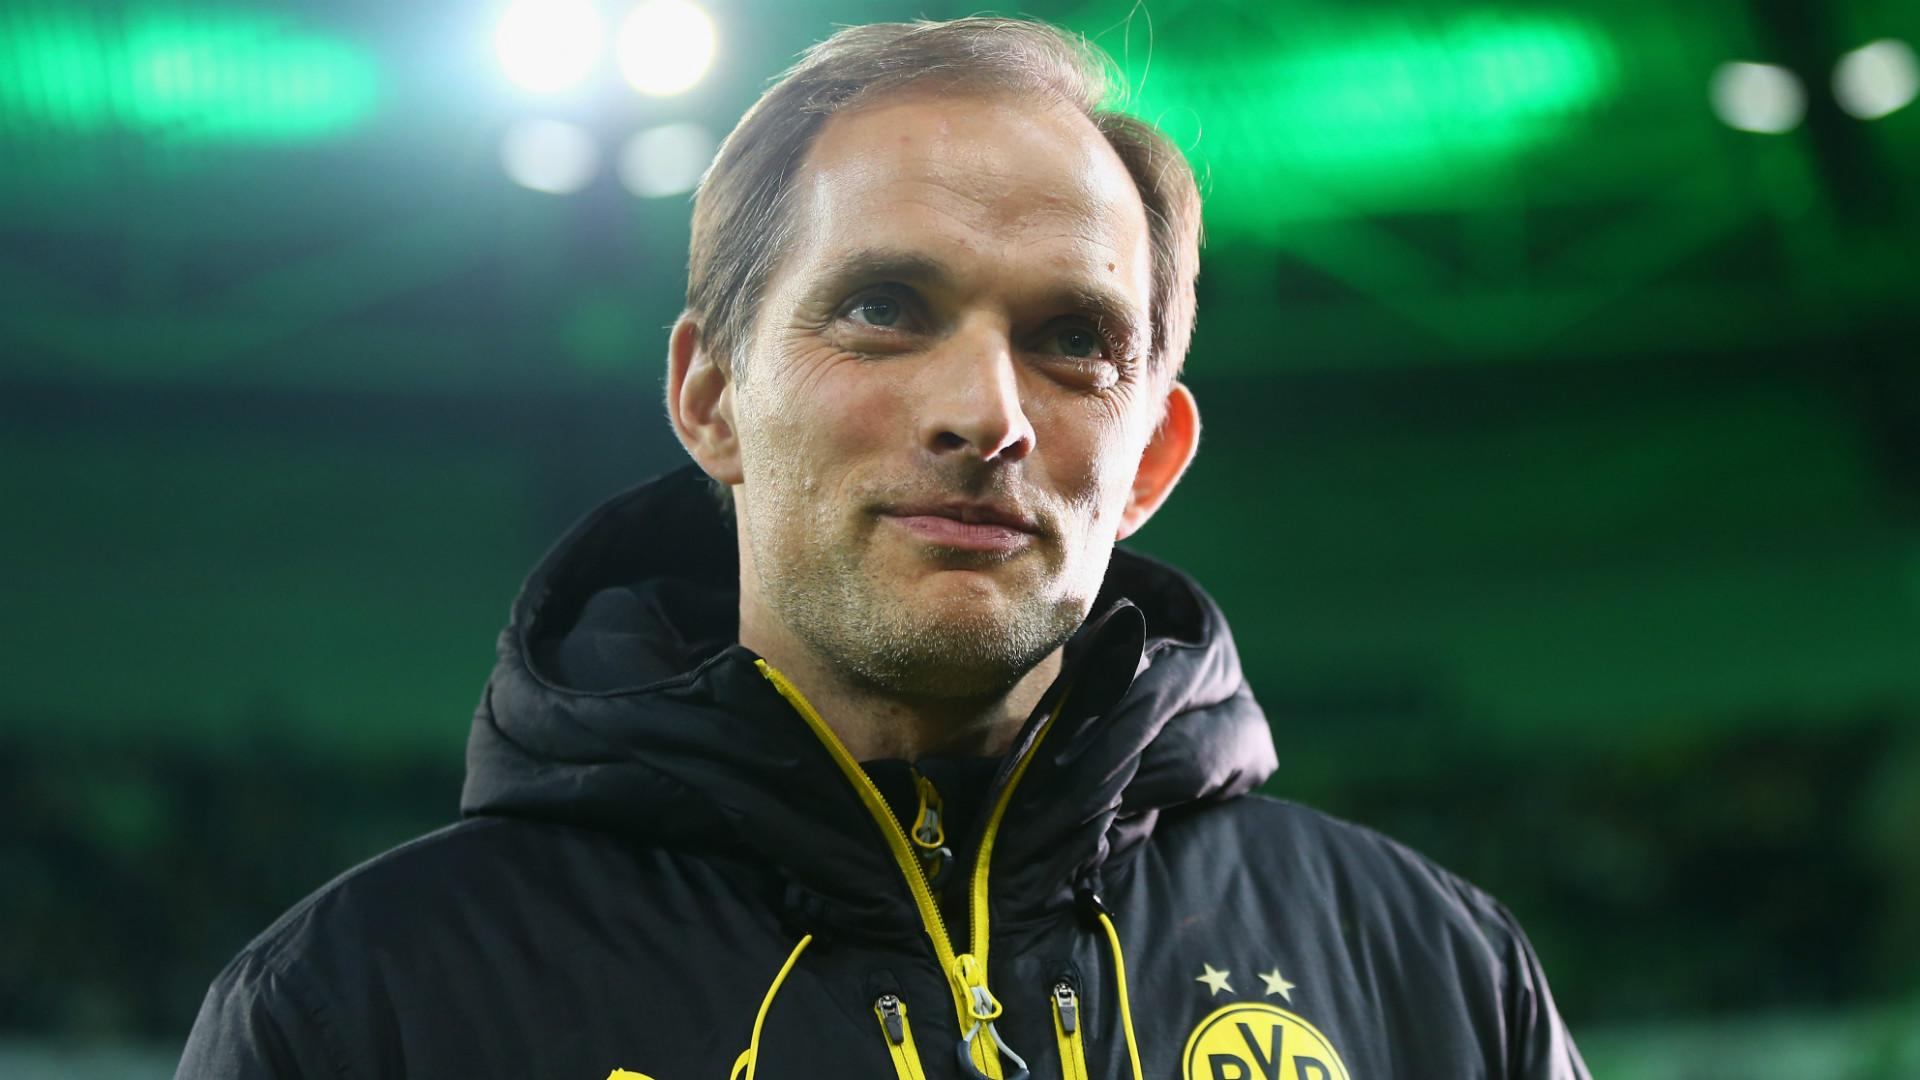 Tuchel inspired by Kerber as Dortmund hunt down Bayern